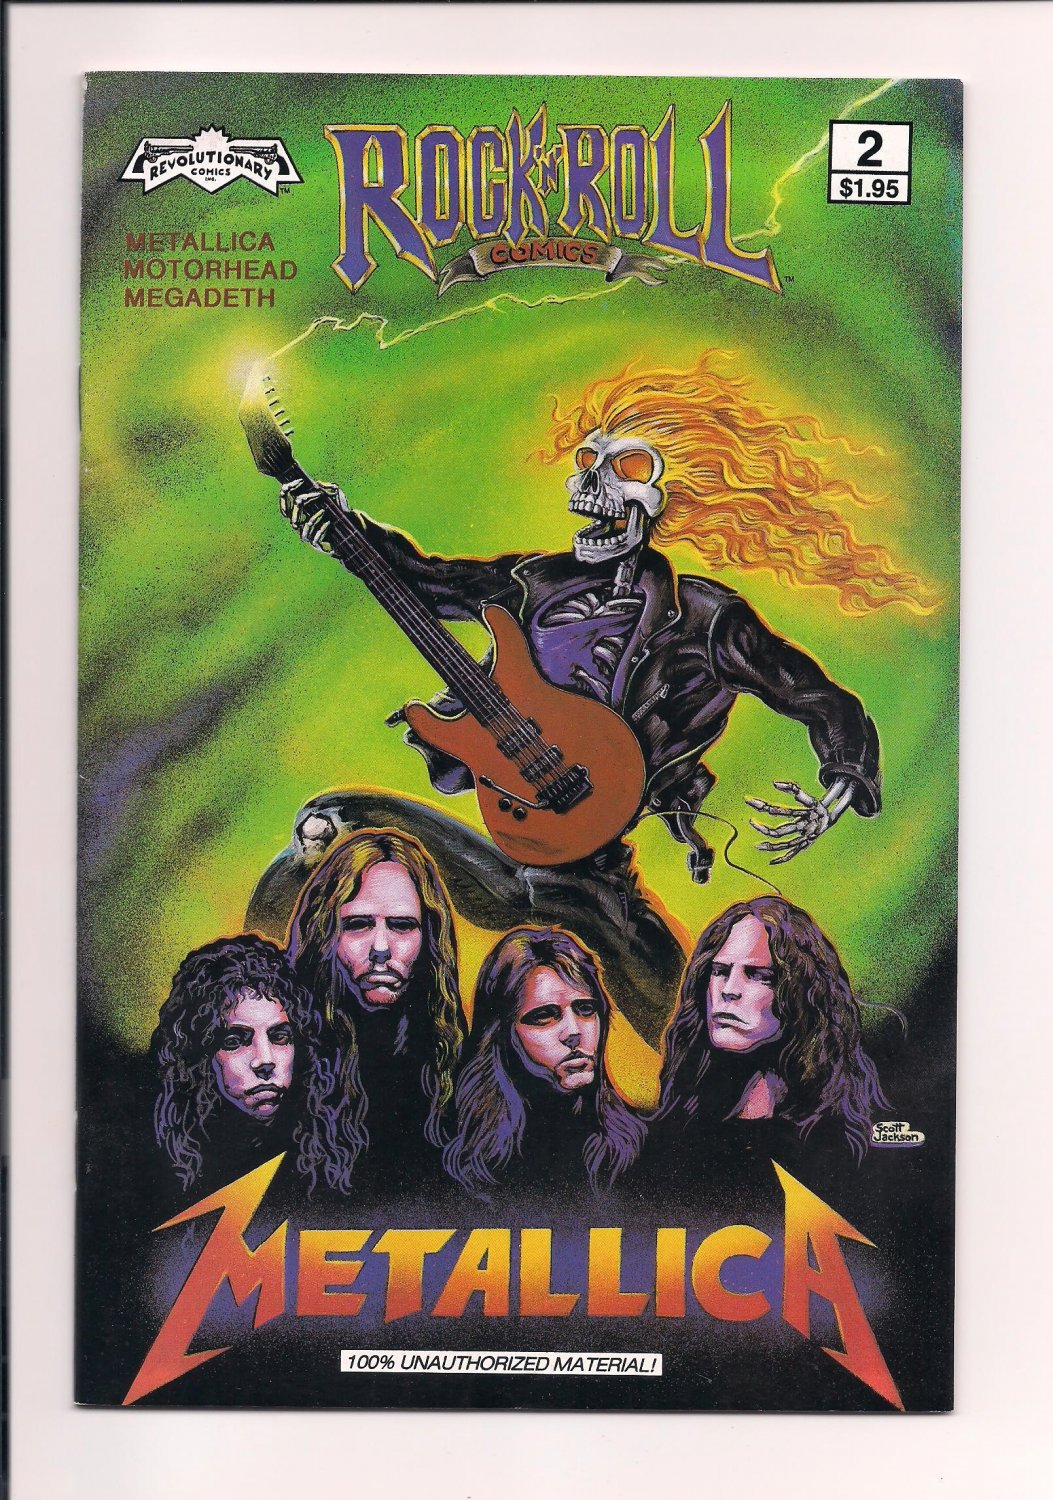 Rock 'N' Roll Comics #2 Metallica (1989) Revolutionary Comics vf or better sh2